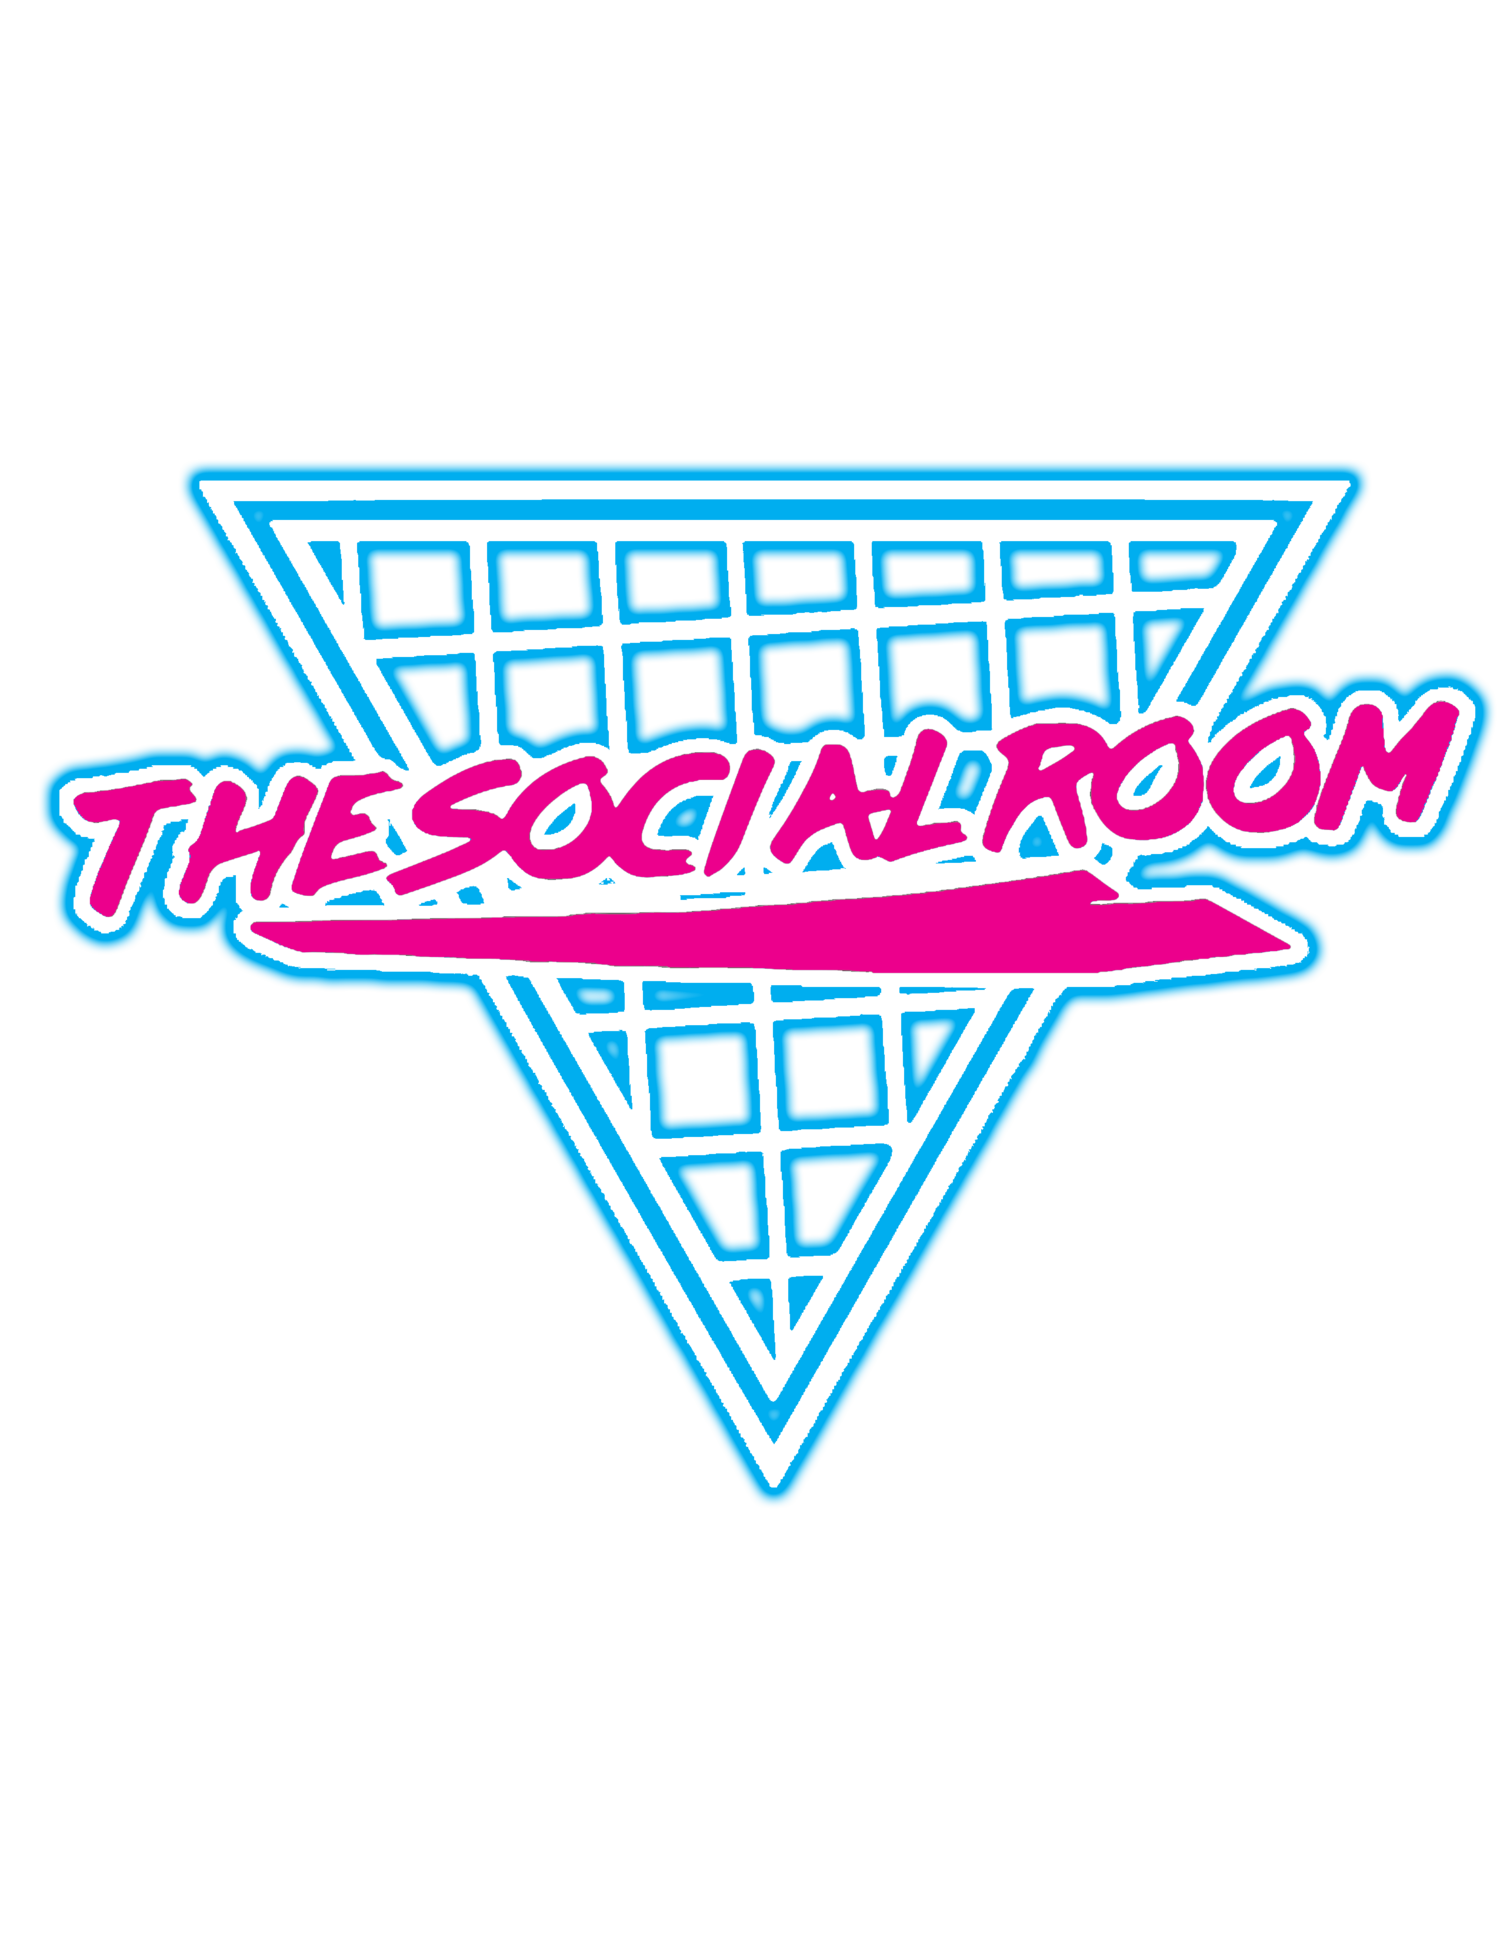 The Social Room